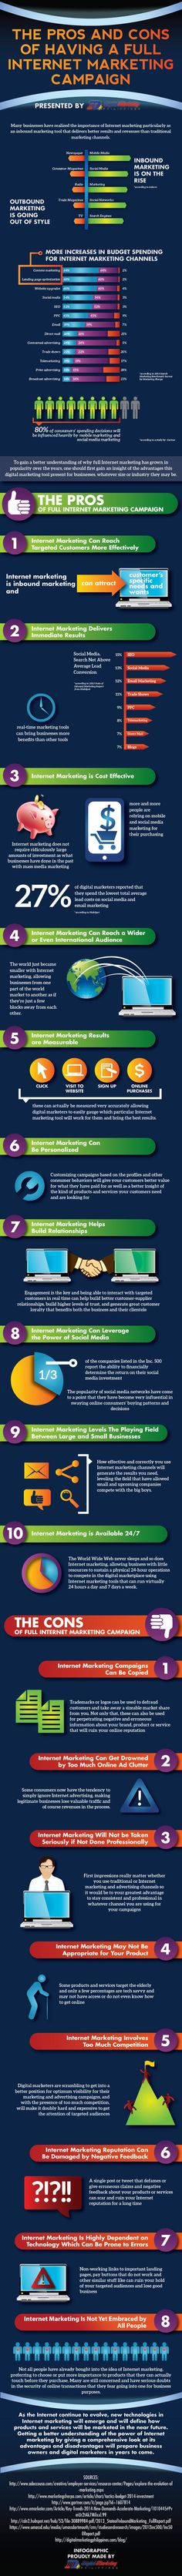 The Pros and Cons of Having A Full Internet Marketing Campaign (Infographic)